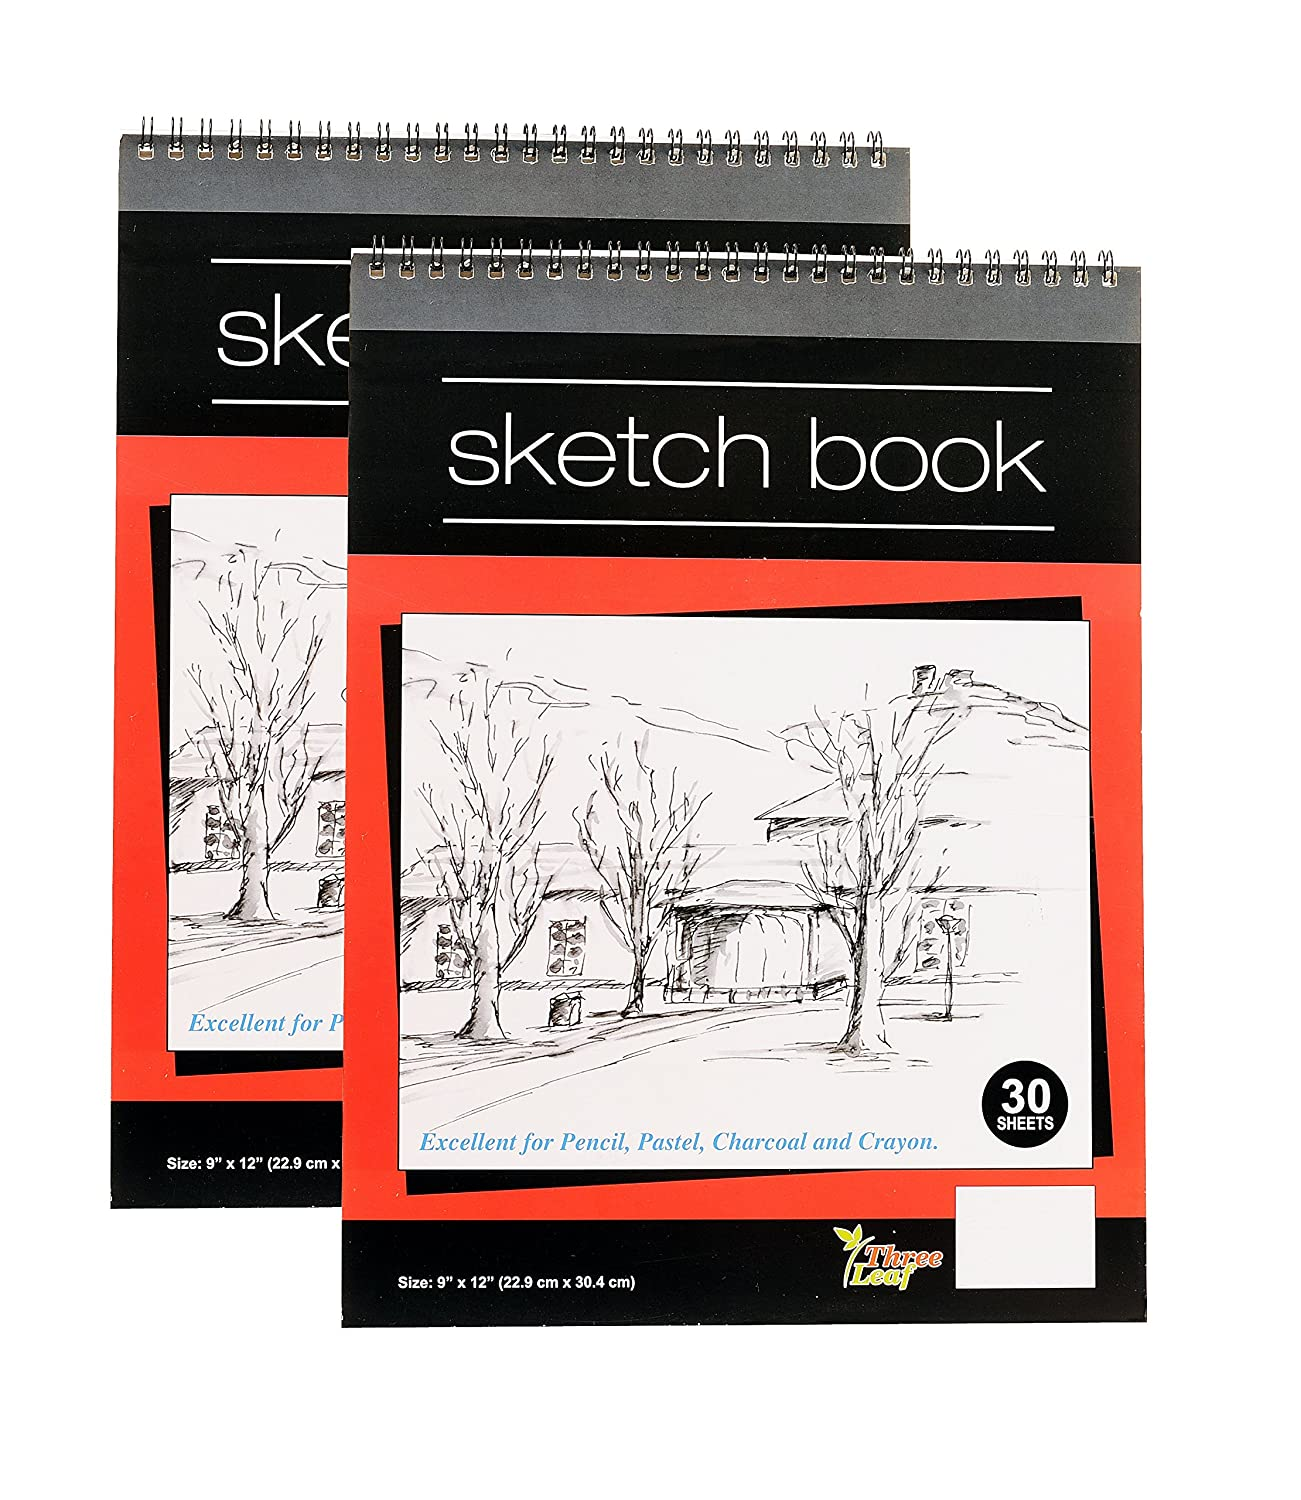 Amazon com wired sketch book 9x12 inch 30 sheets per book excellent for pencil pastel charcoal and crayon from northland wholesale